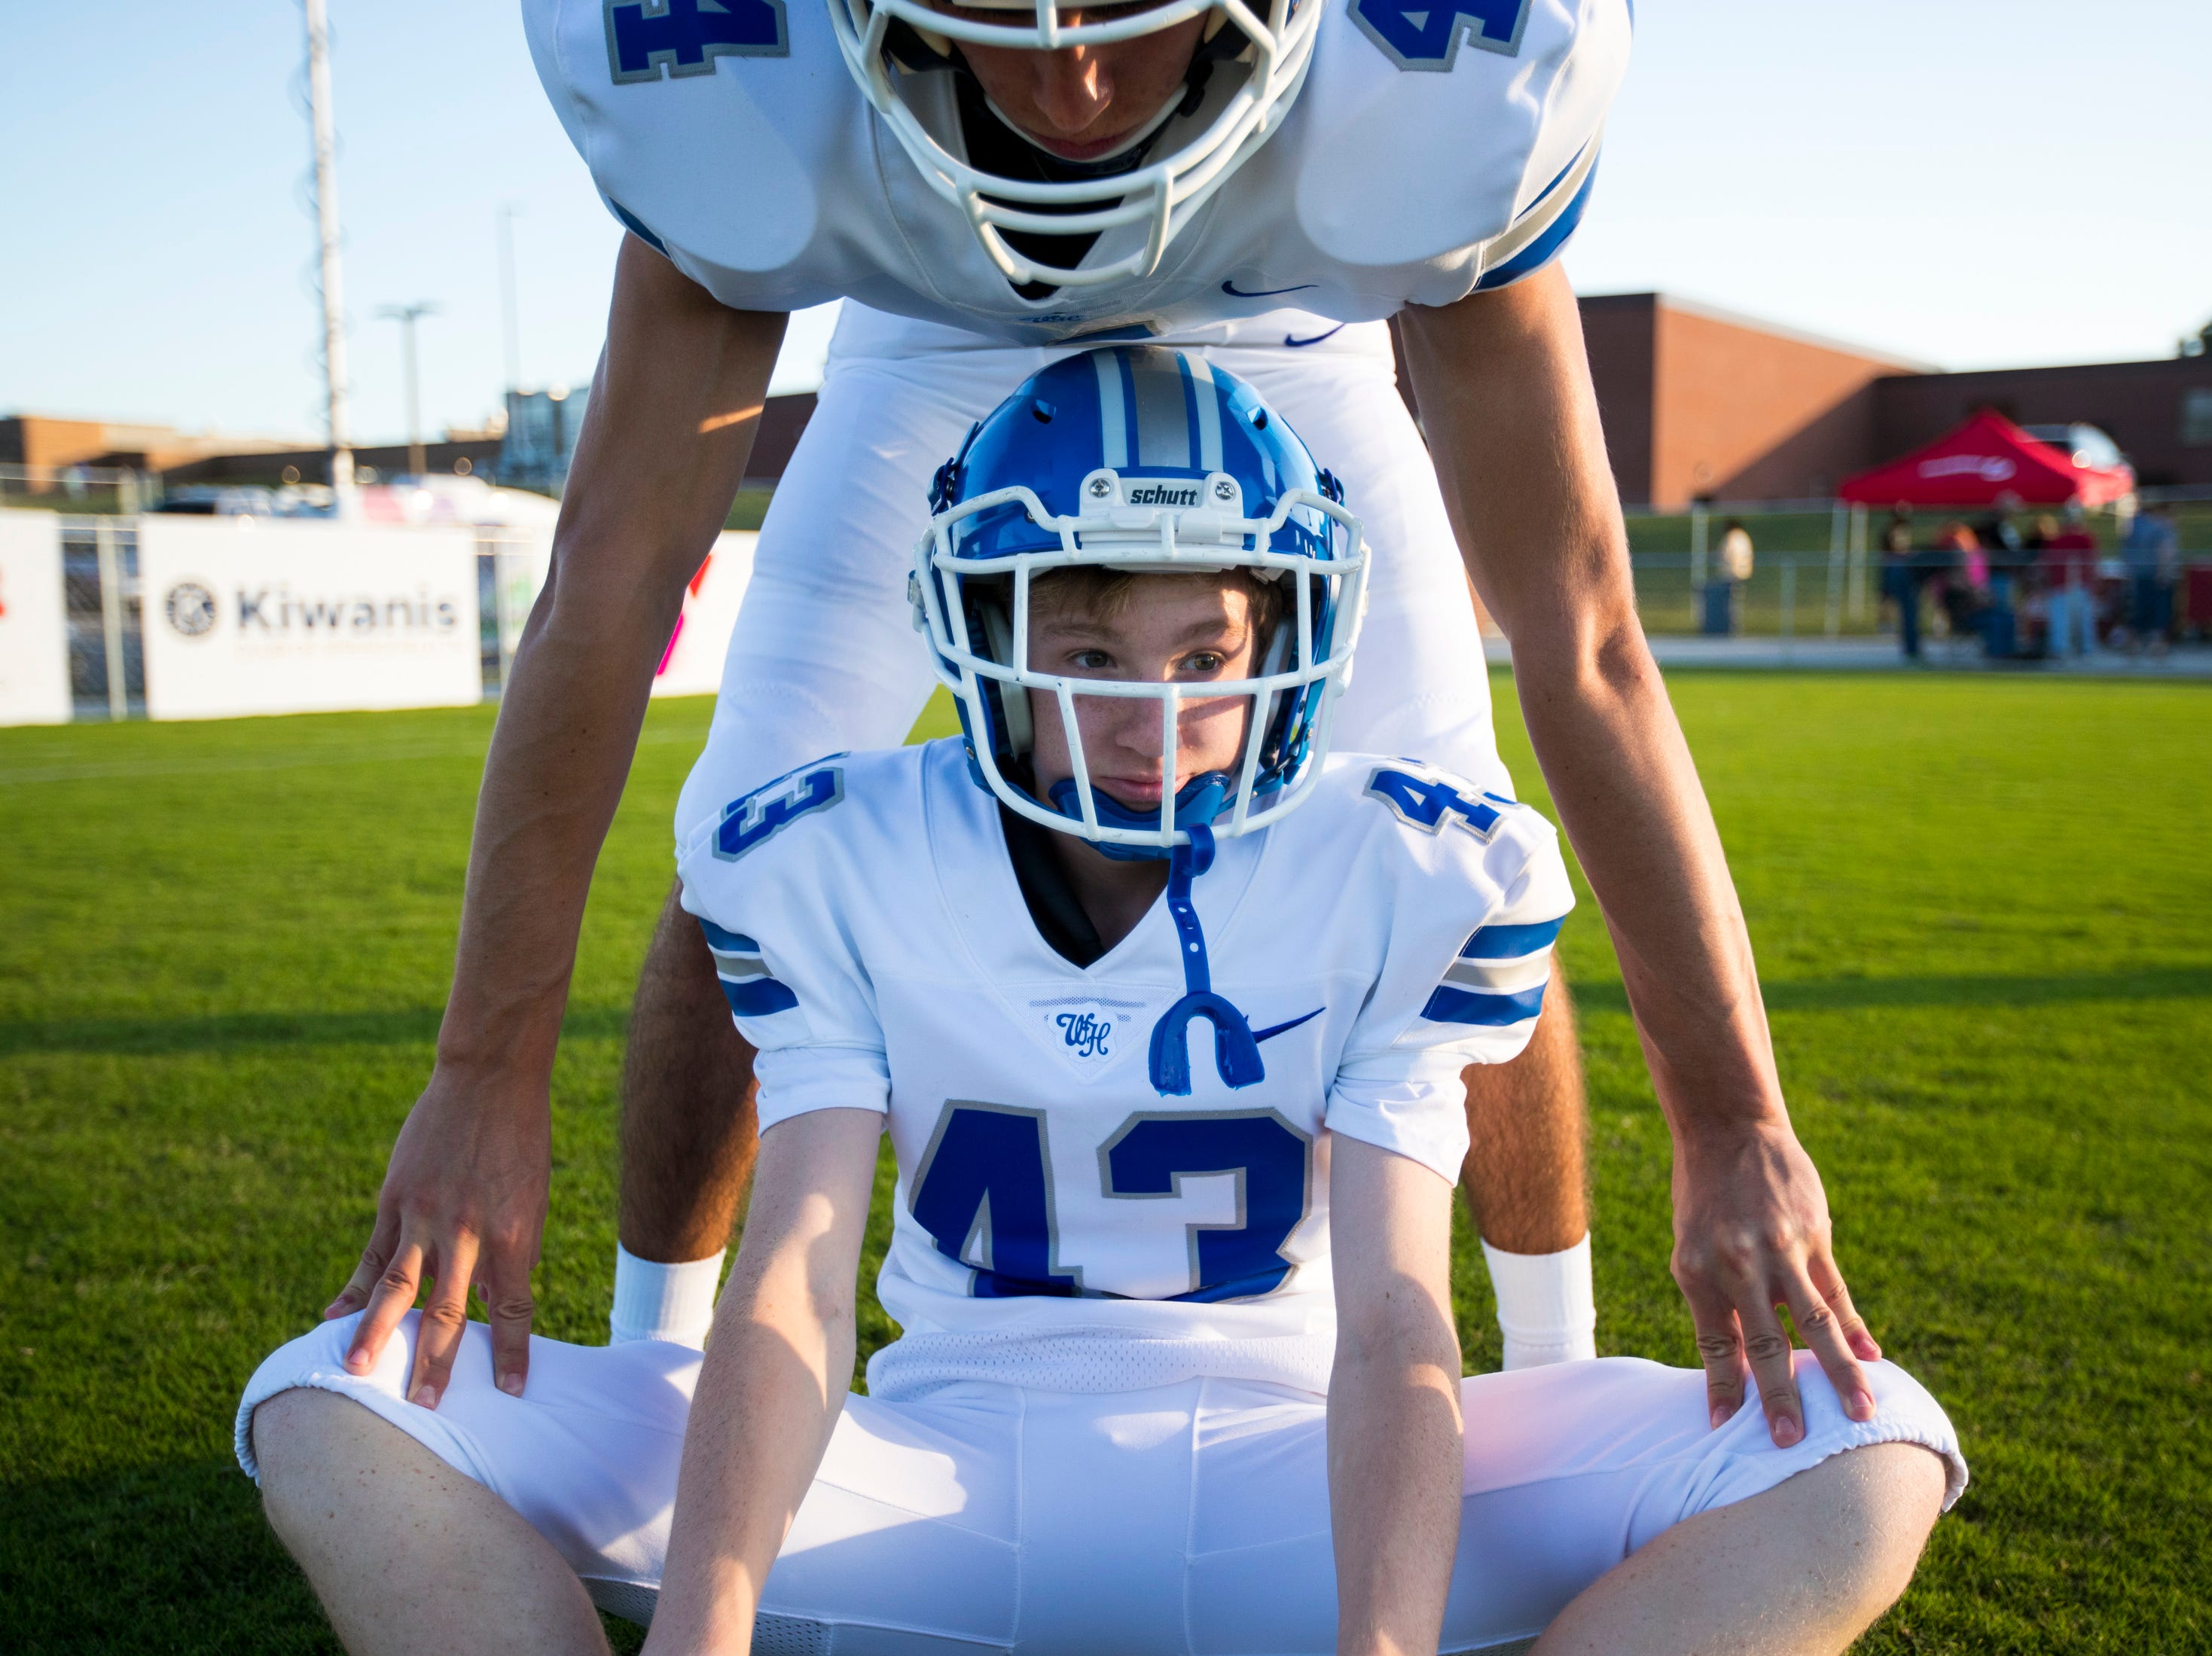 A teammate helps White House's Matthew Miller (43) stretch before Springfield's game against White House at Springfield High School in Springfield on Friday, Sept. 14, 2018.